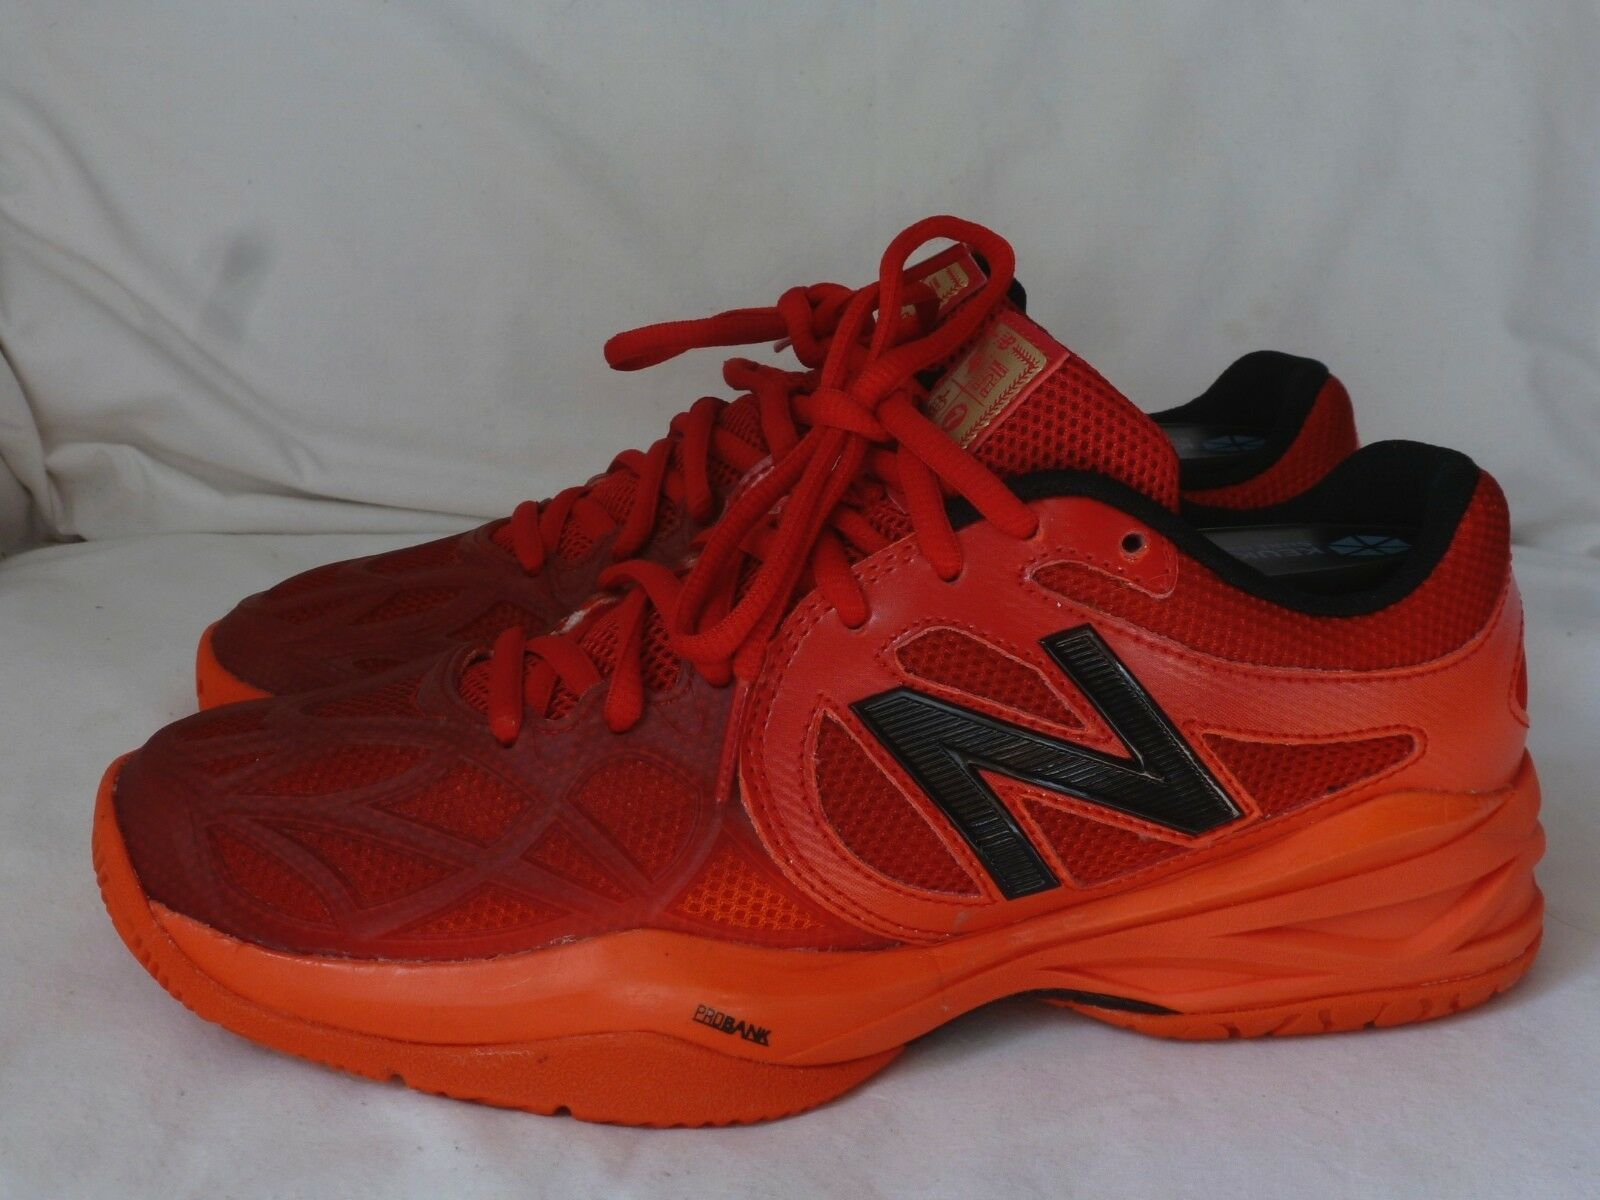 New Balance 996 Limited Edition 2014 French Open Roland Garros schuhe Größe 7.5